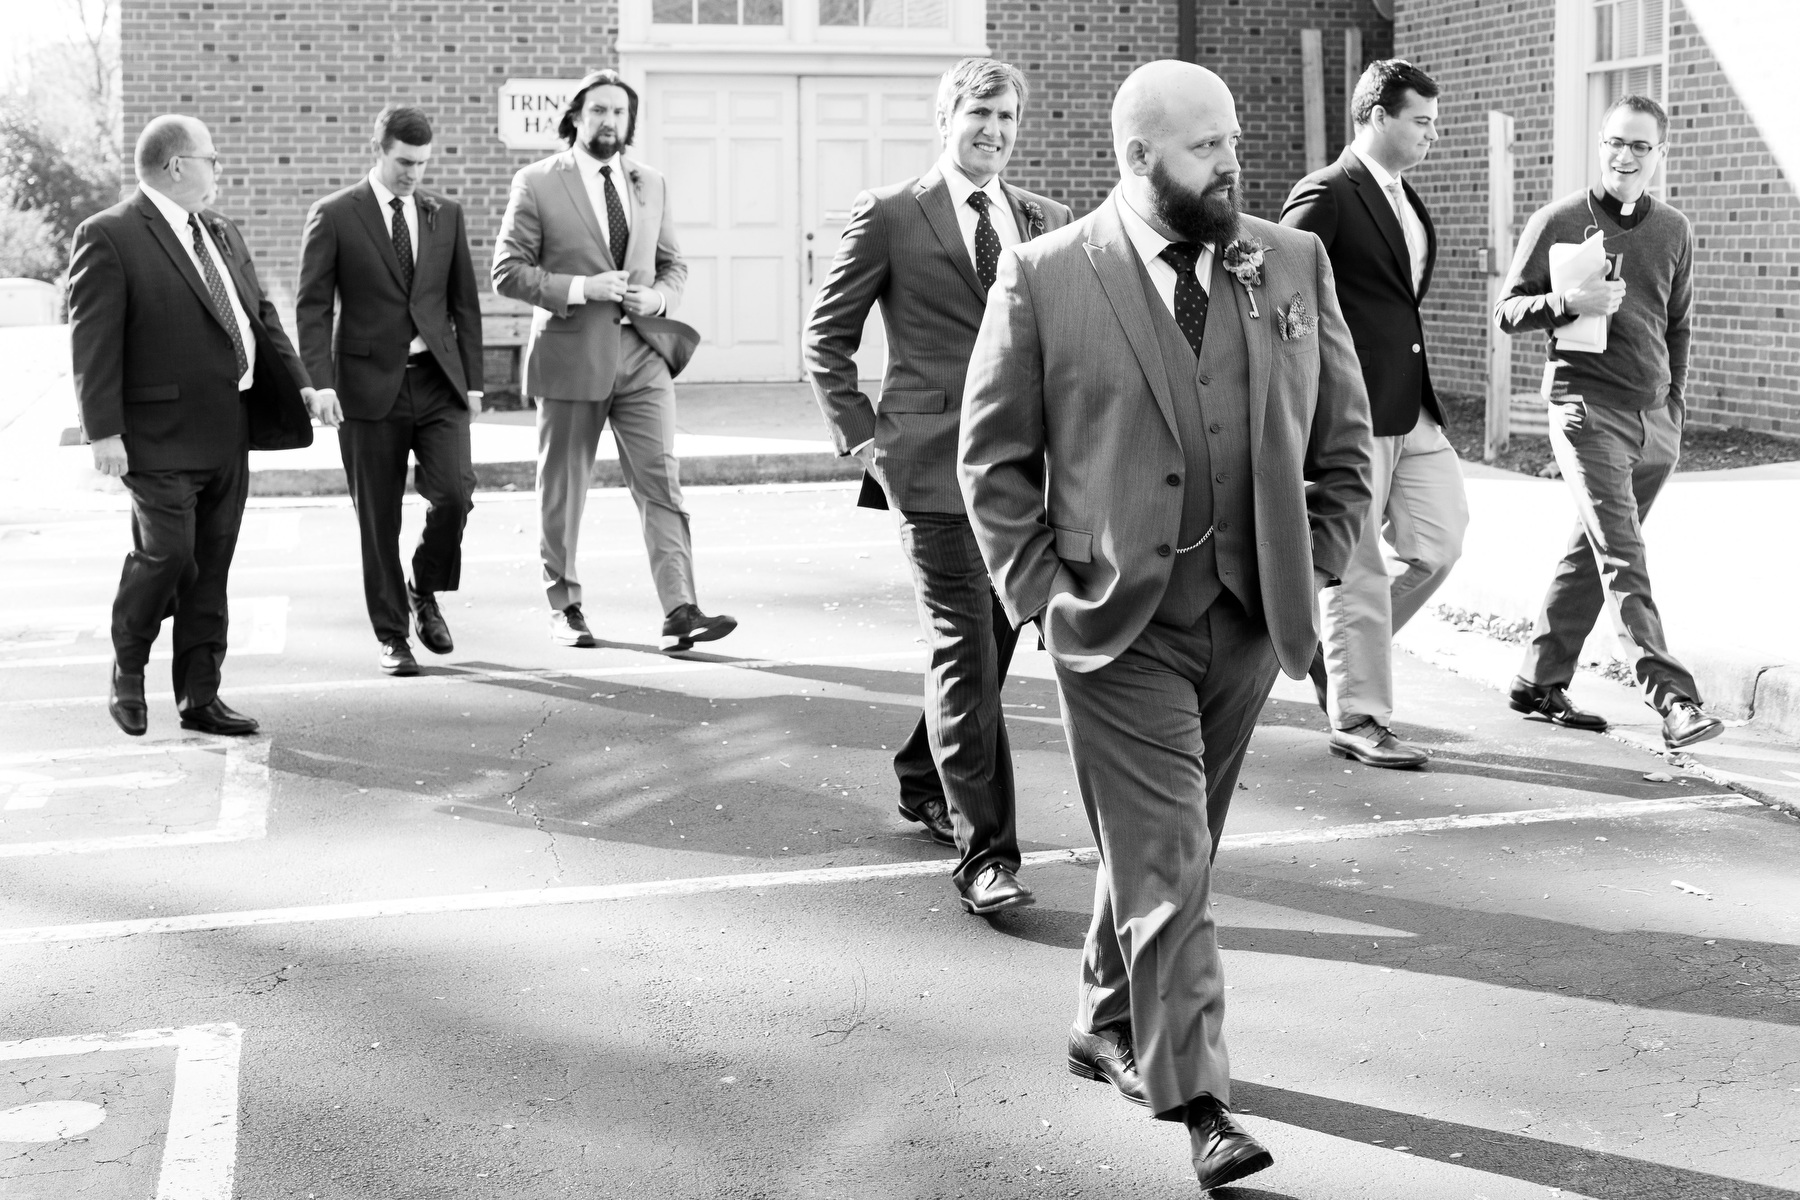 A wedding party strolls to the wedding ceremony at Trinity Methodist just before the Receptio at Berkeley Hotel in Richmond, VA